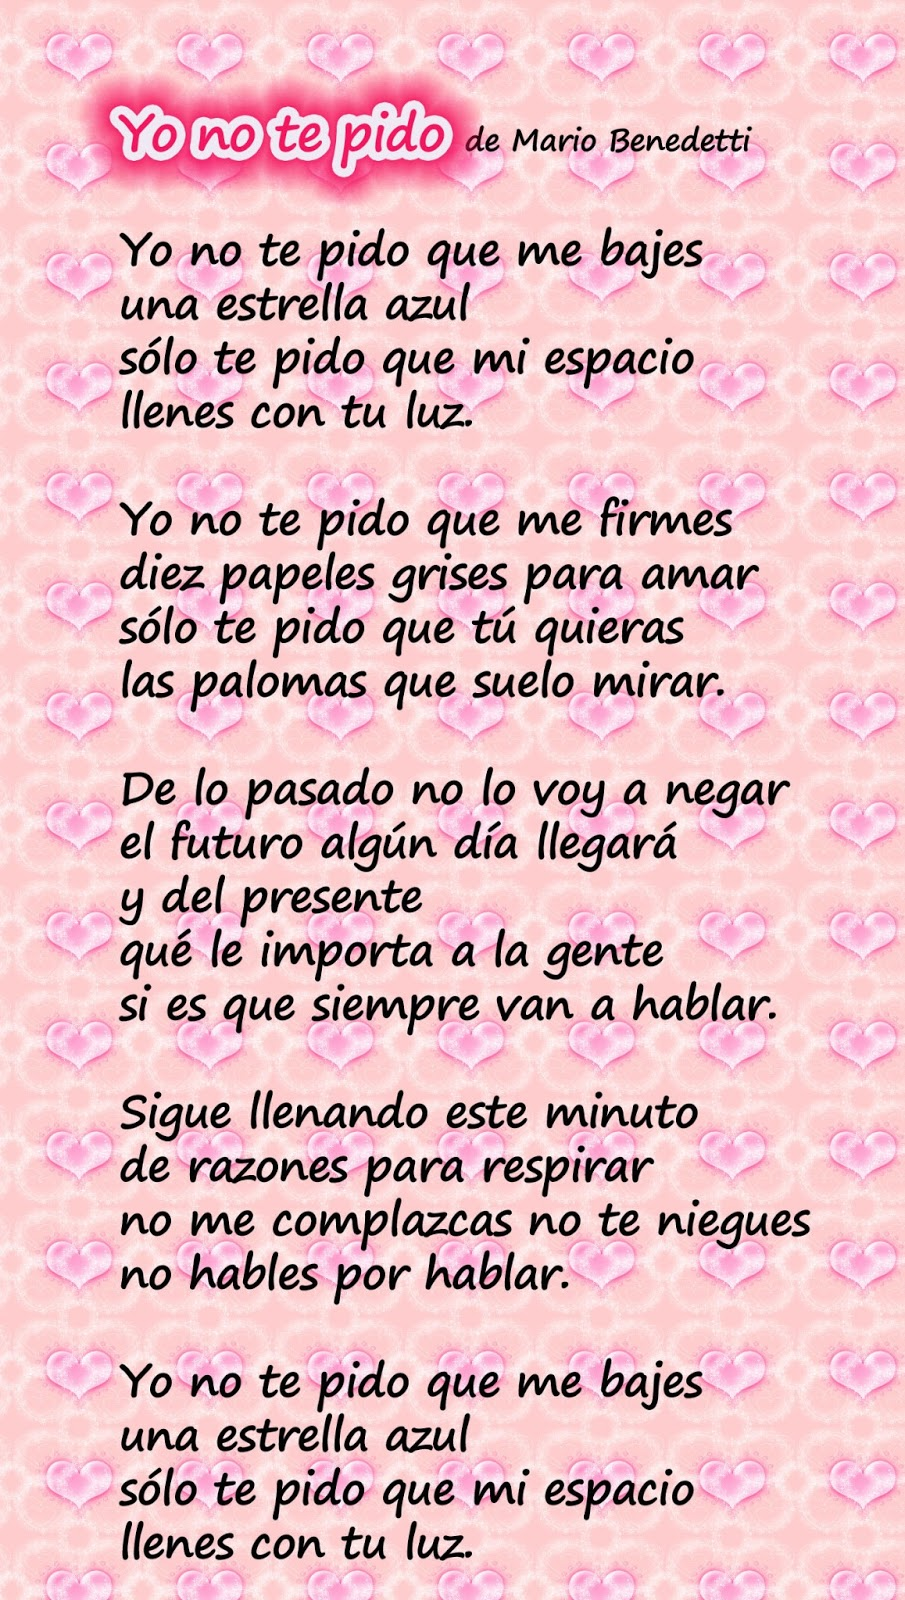 Spanish Love Poems Quotes